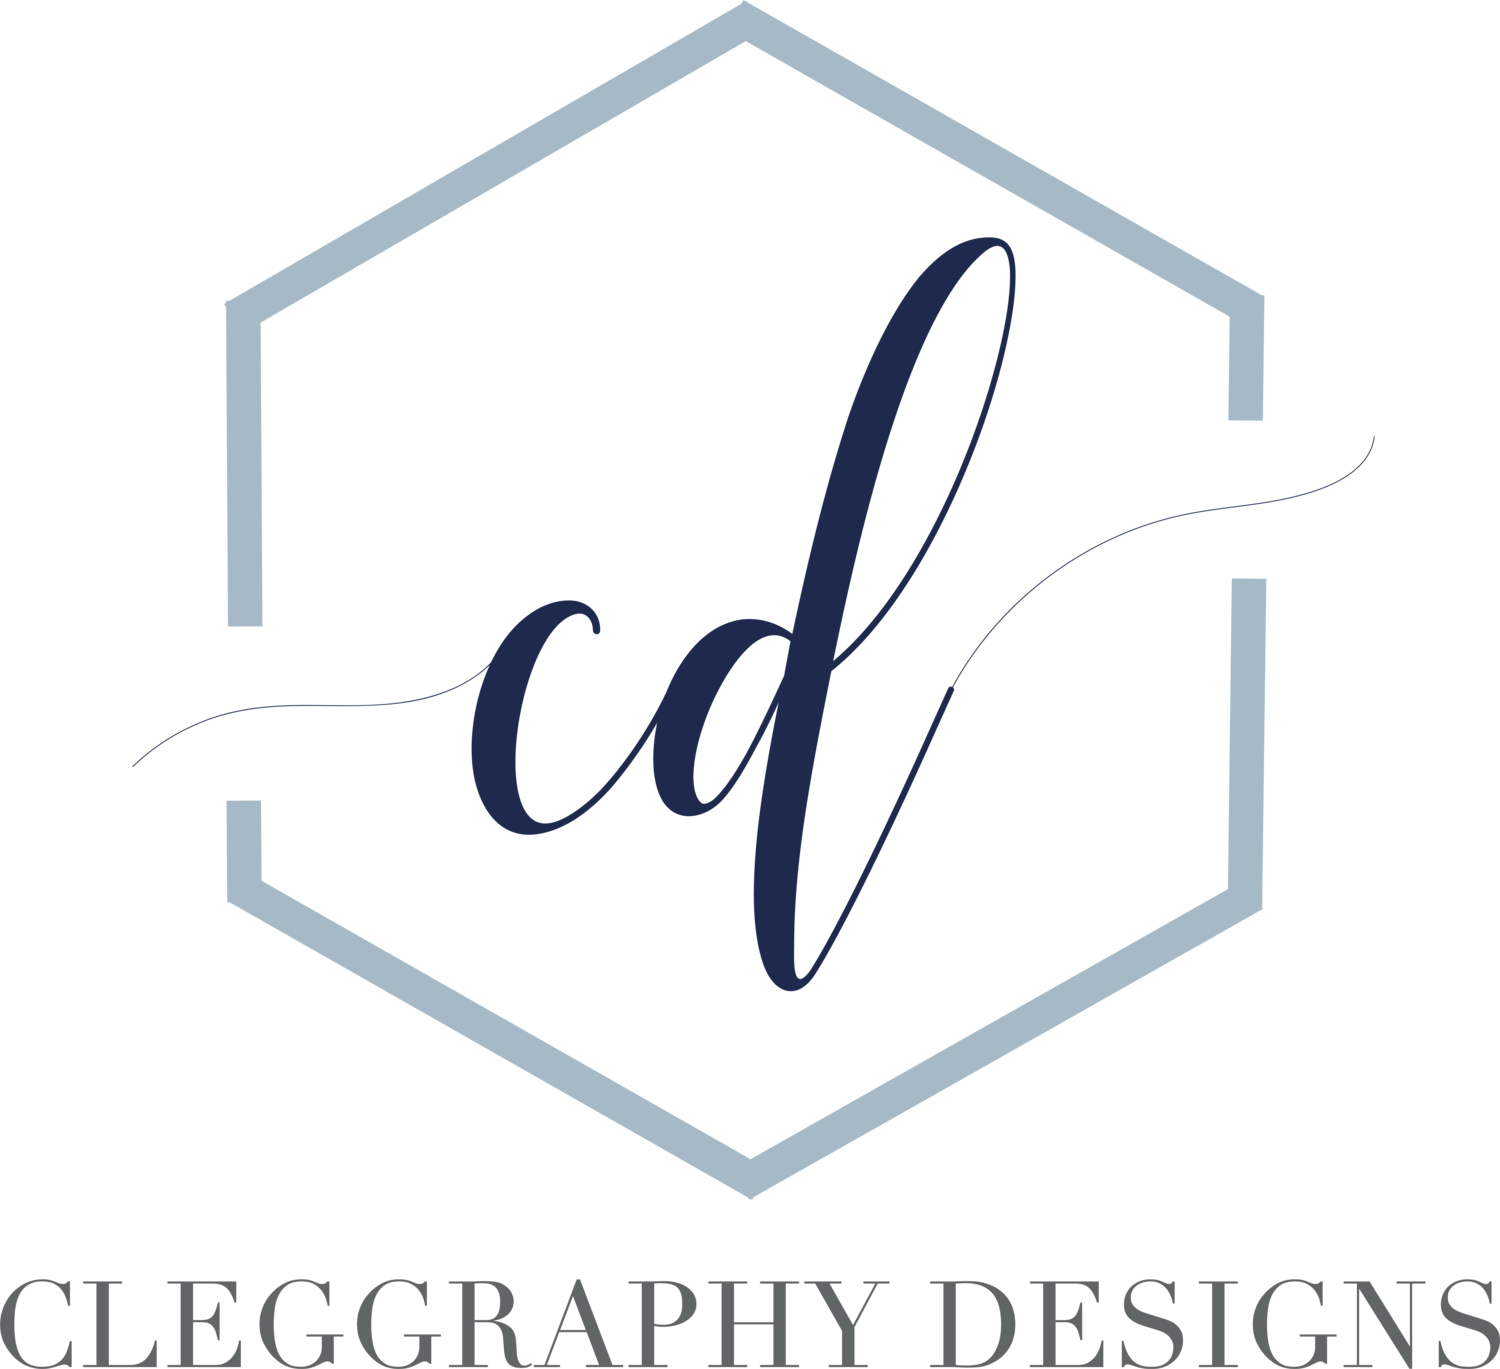 Cleggraphy Designs